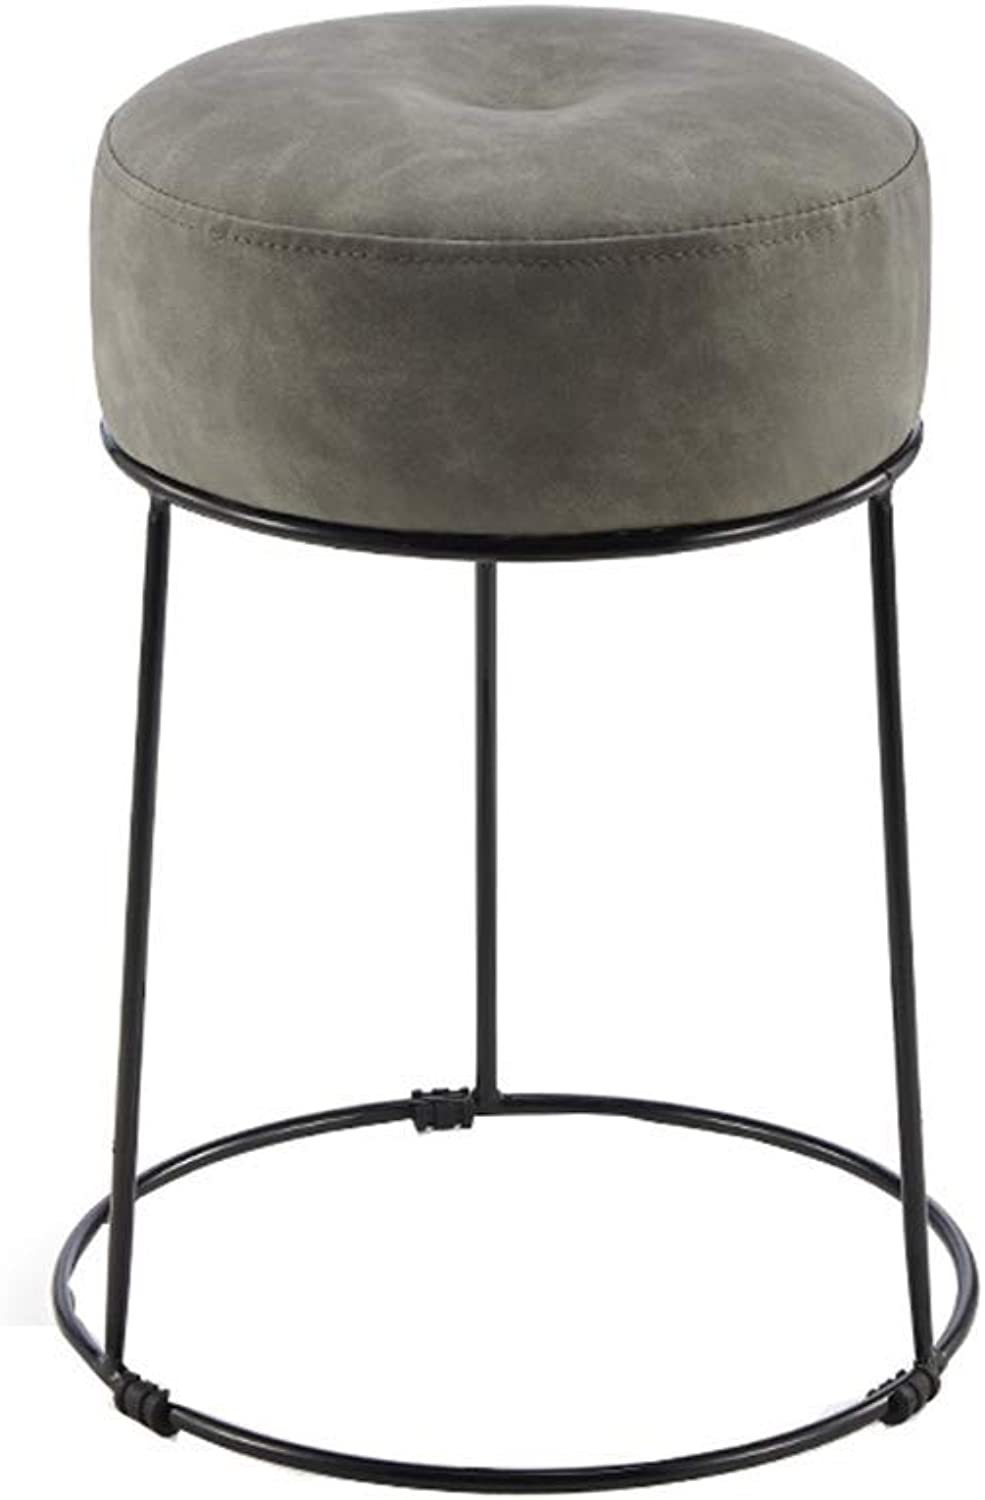 Nordic Makeup Stool,Simple Round Barstool Romantic Tall Stool Pouffe with Soft Seat for Bar Kitchen Bistro Pub Breakfast,Max Load 150kg,35 x 35 x47 cm